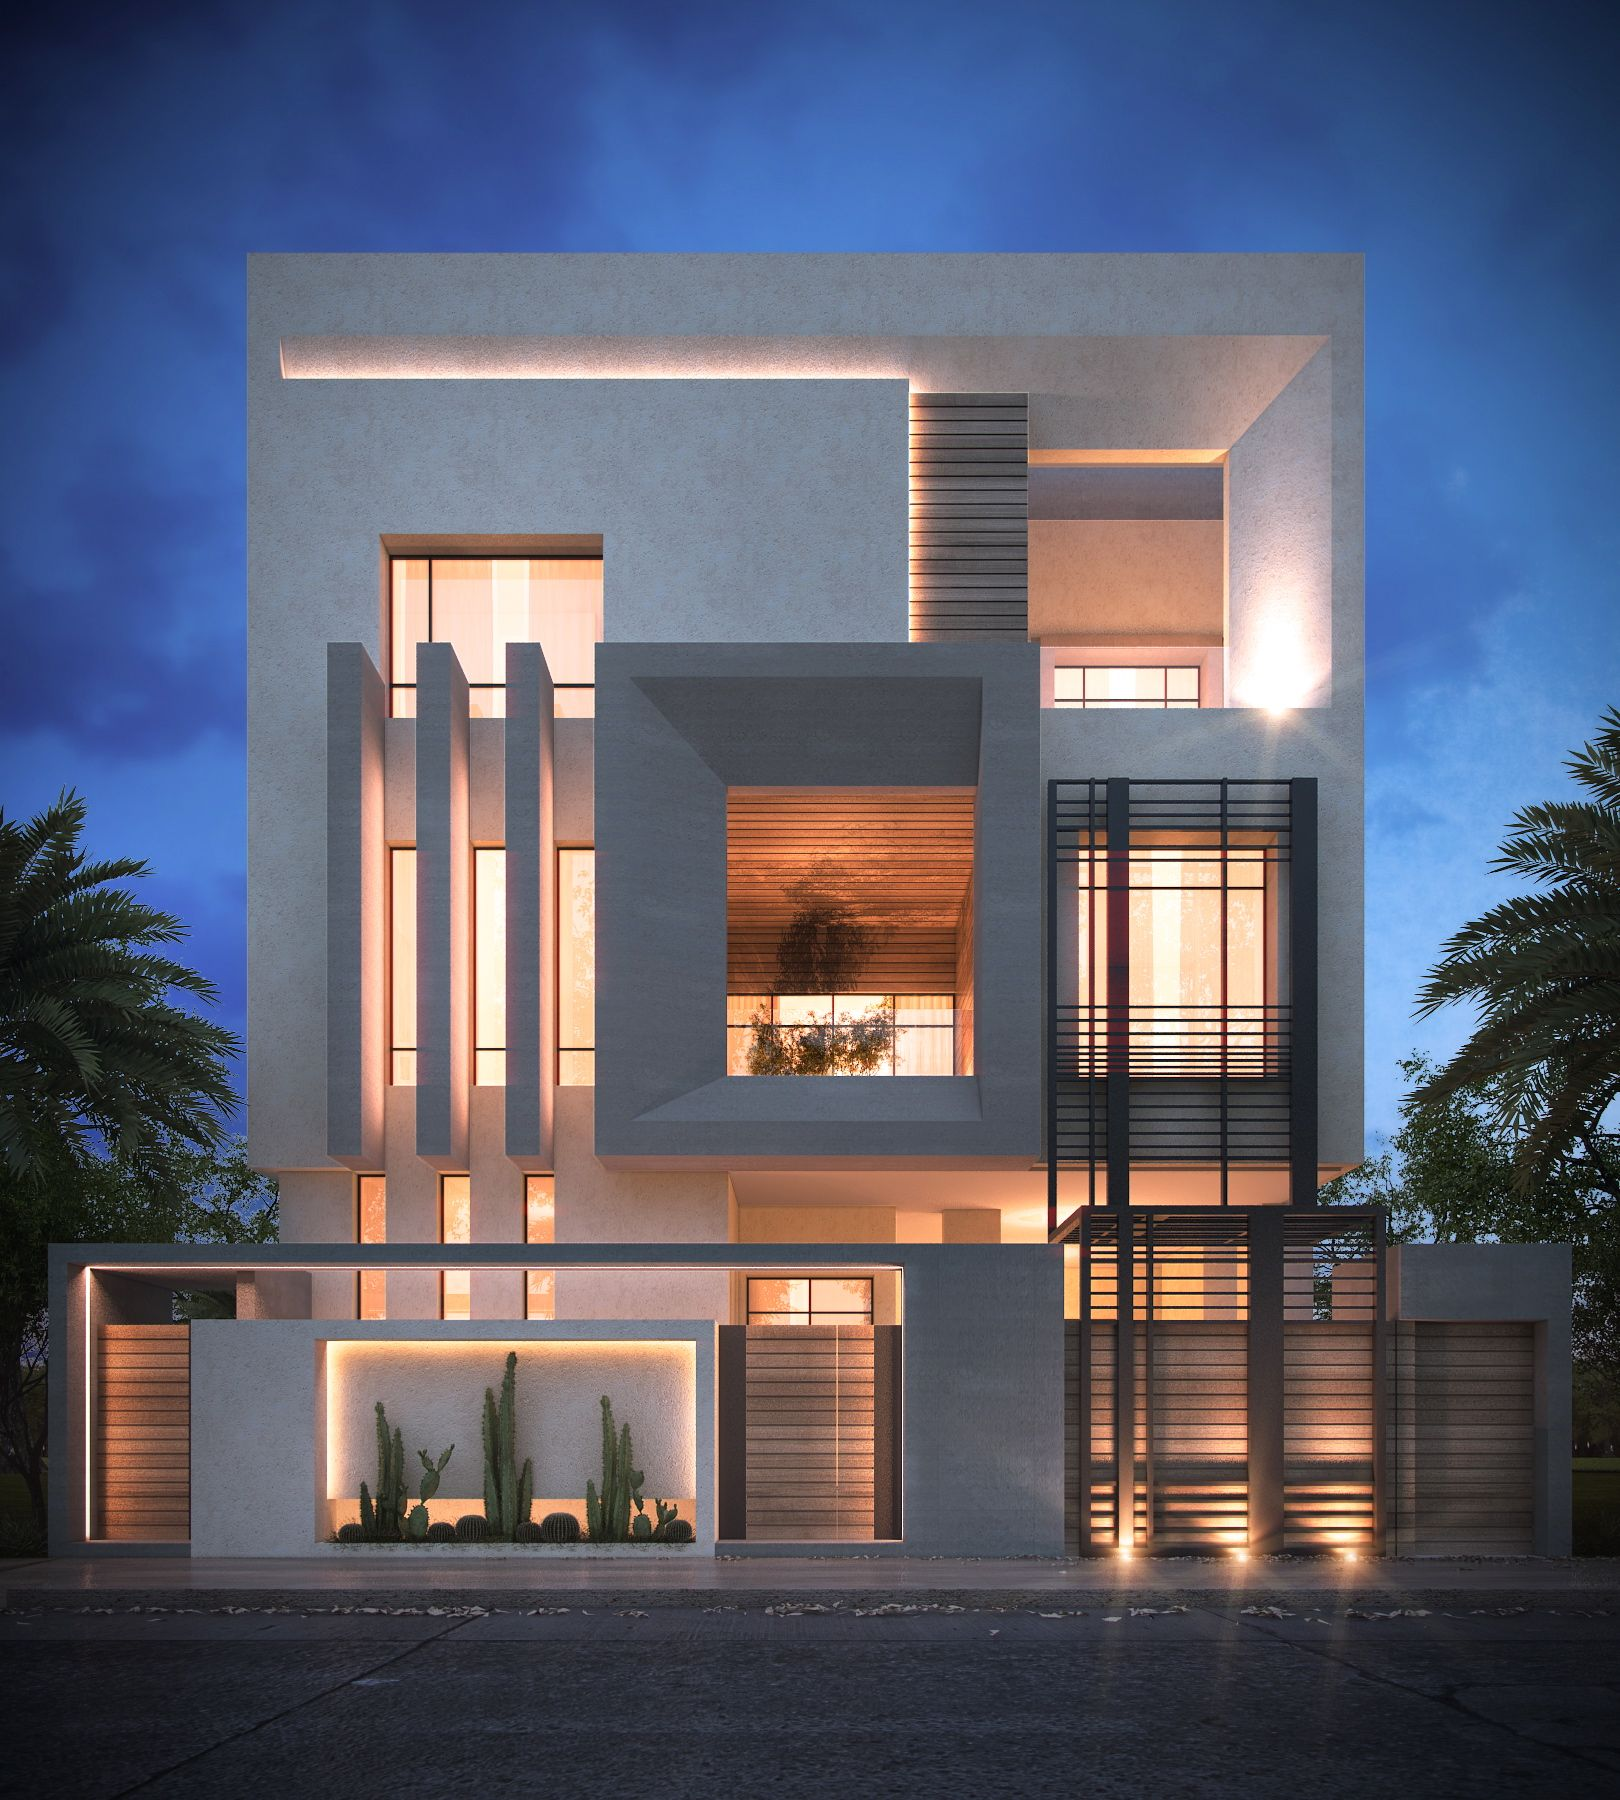 Private villa sarah sadeq architects kuwait modern for Home design images modern